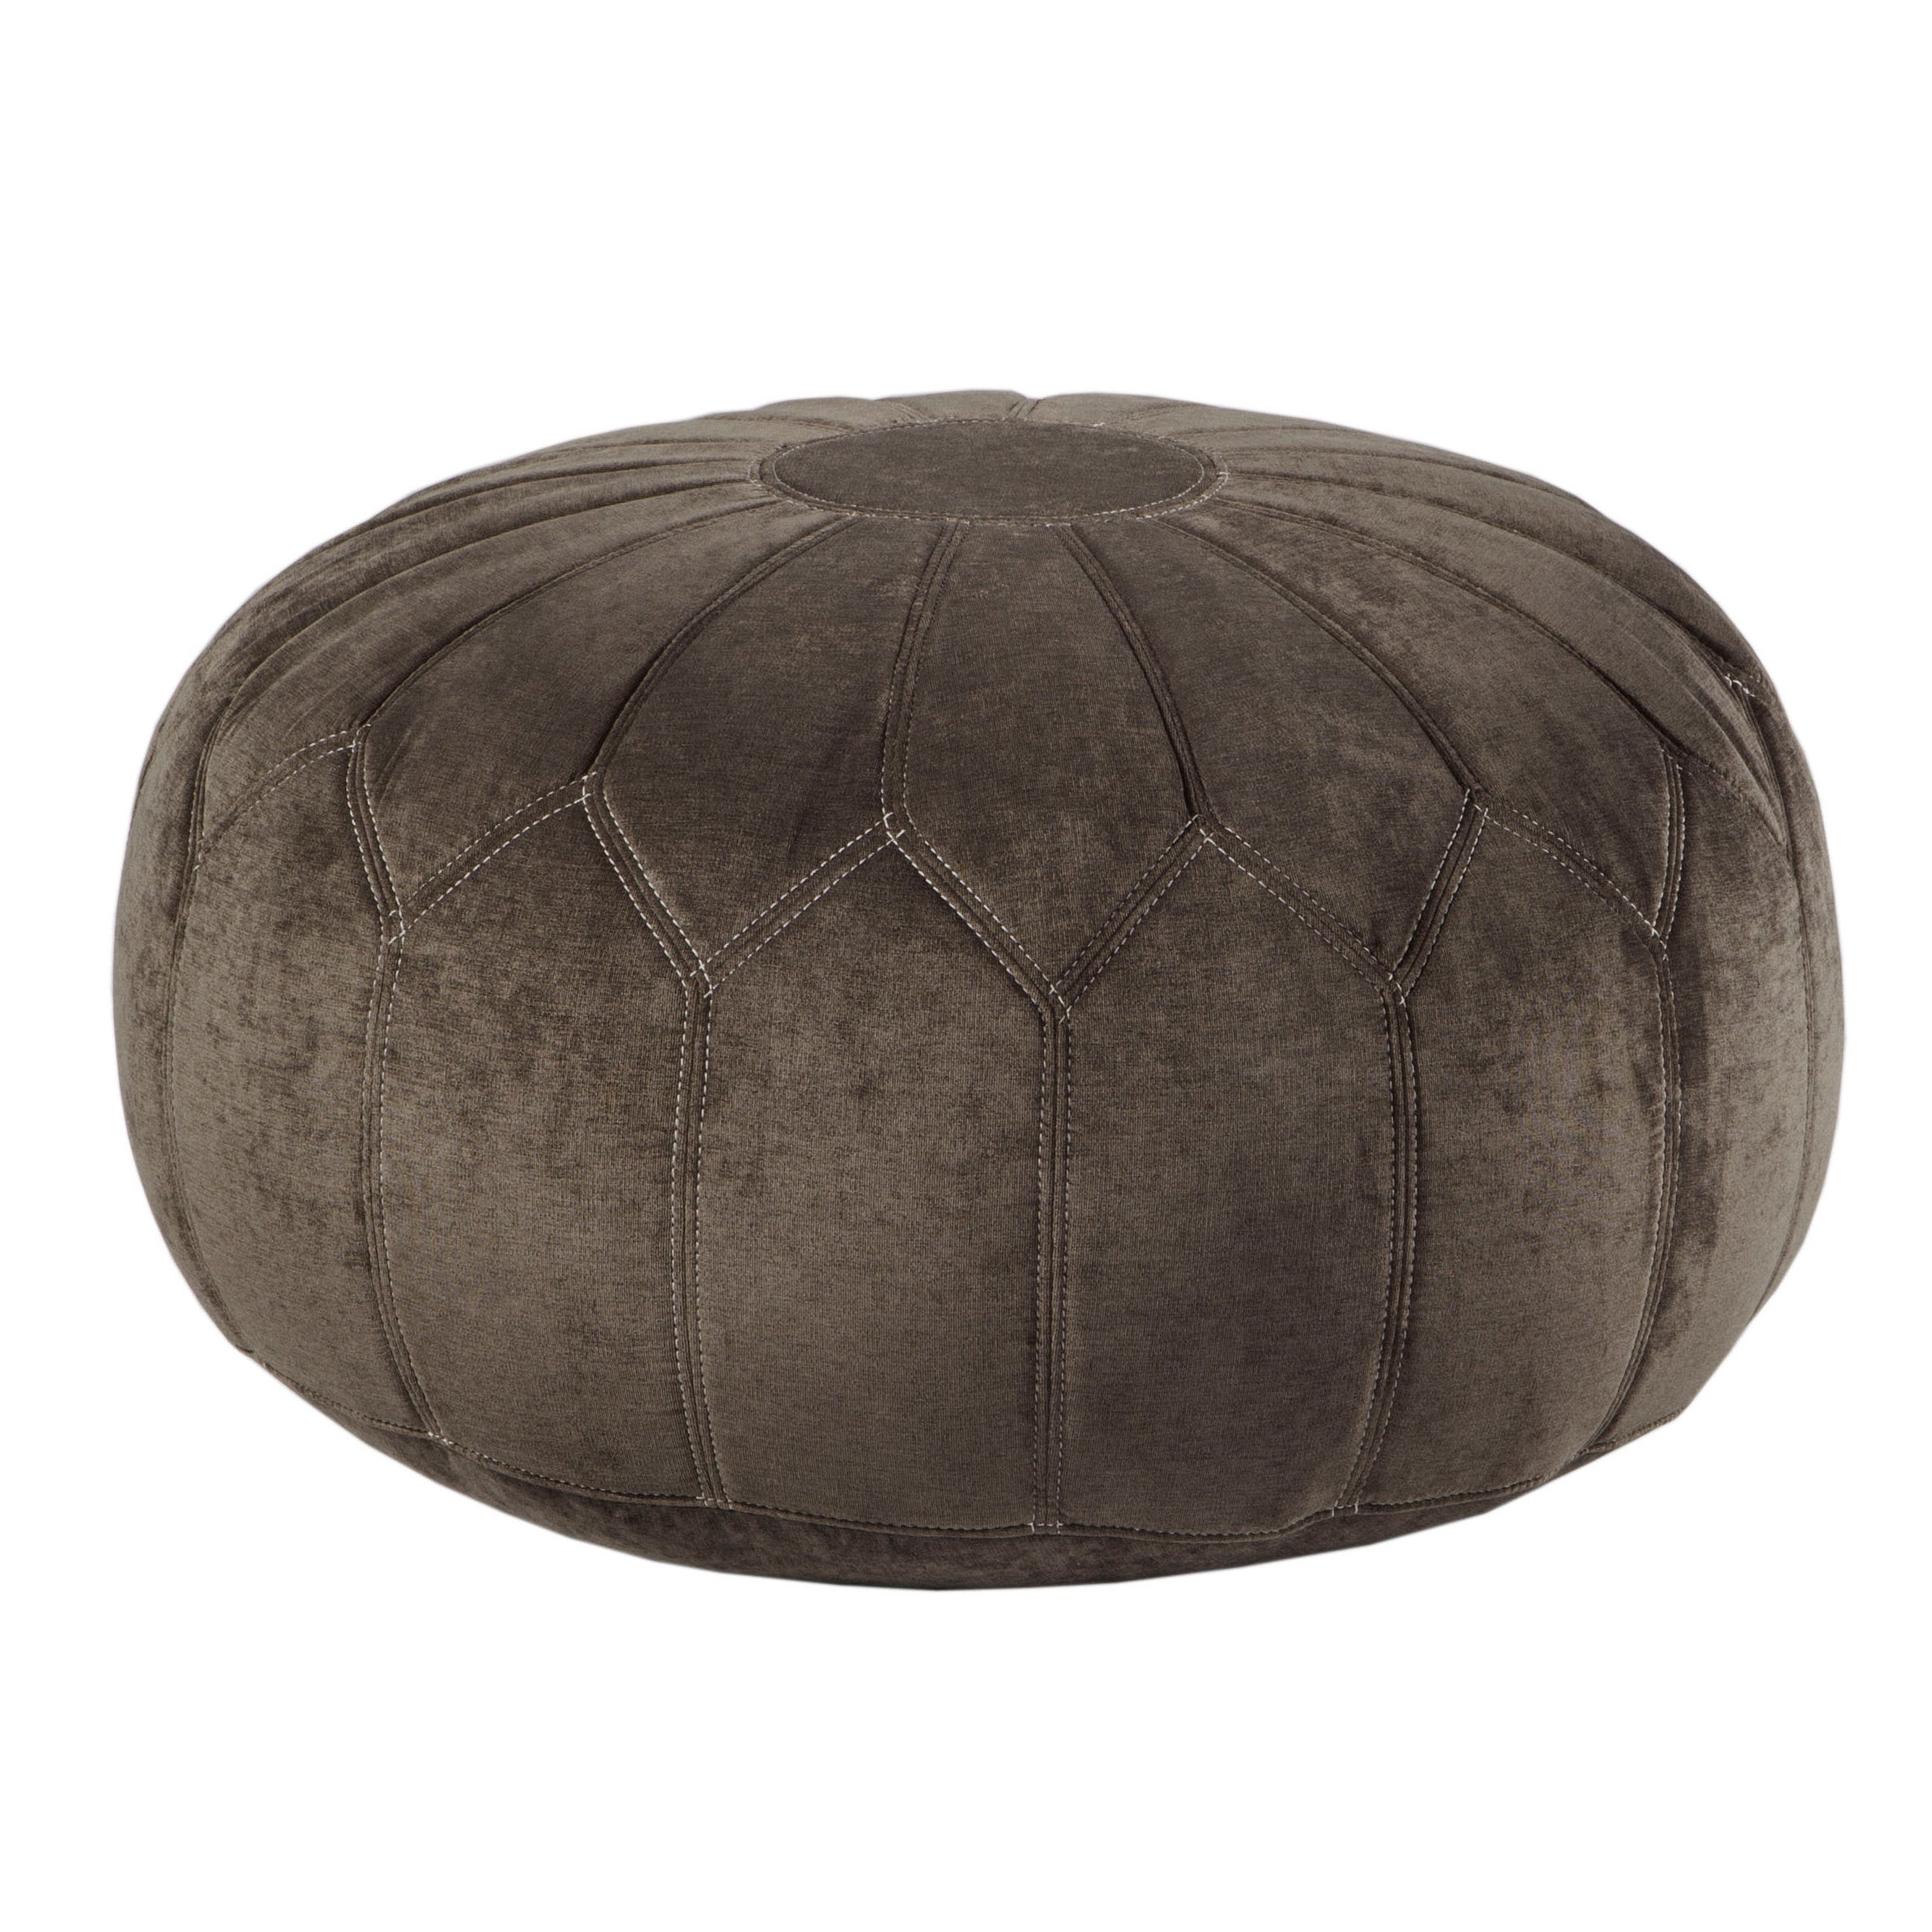 tan stunning beni pouf morocco ottoman round poof product ourain shop diameter carpet leather